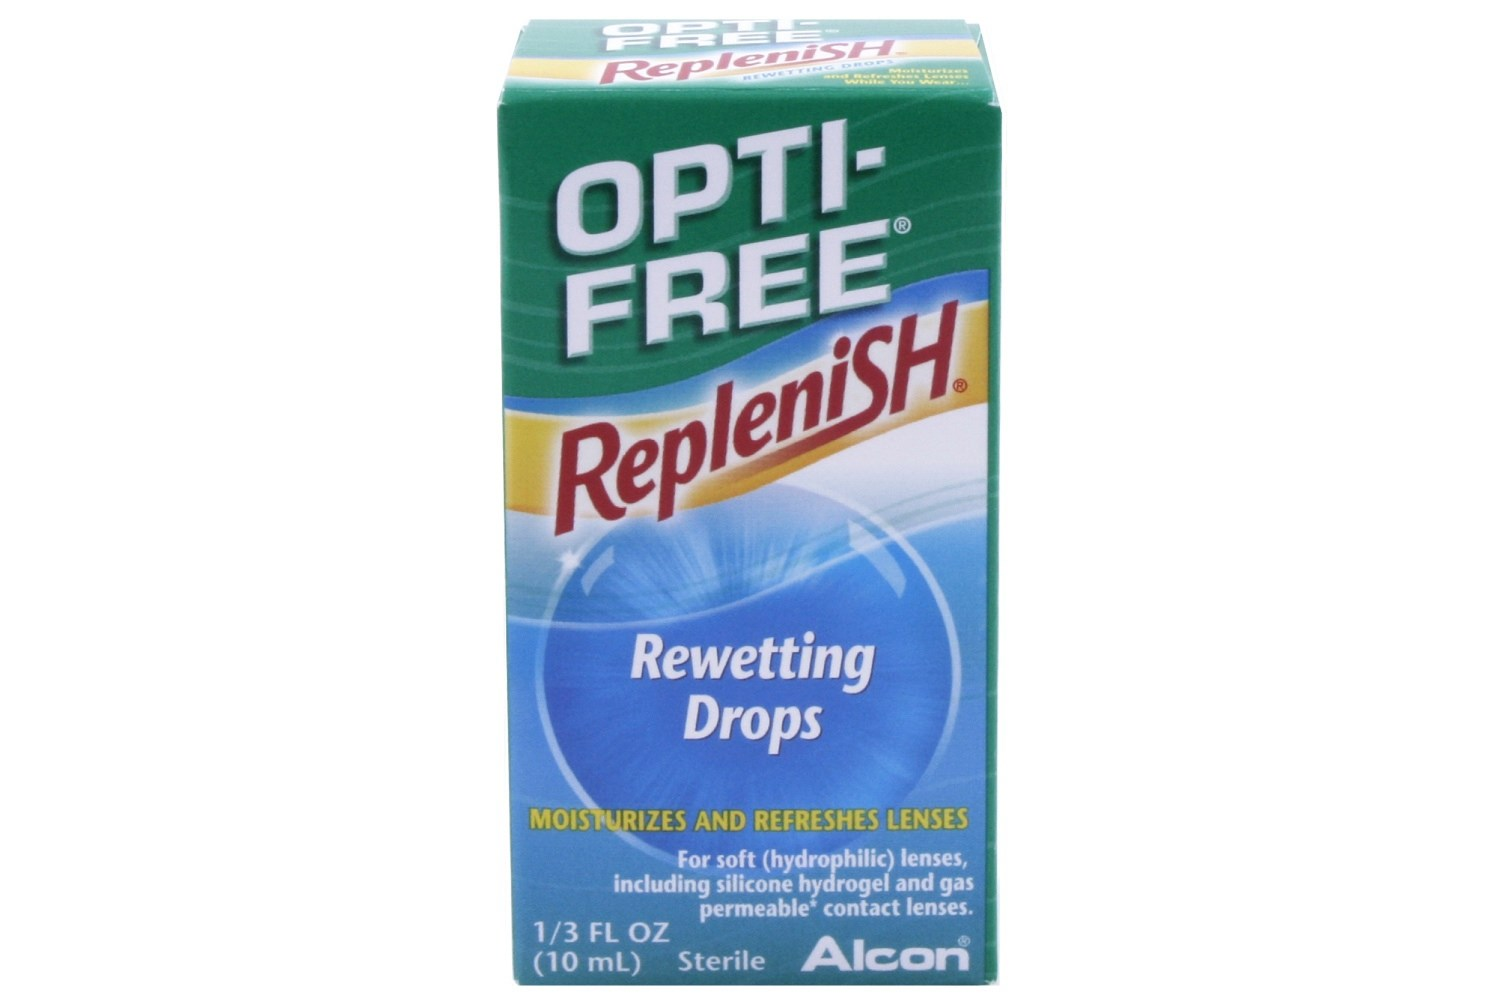 Opti Free Replenish Rewetting Drops 33 fl oz